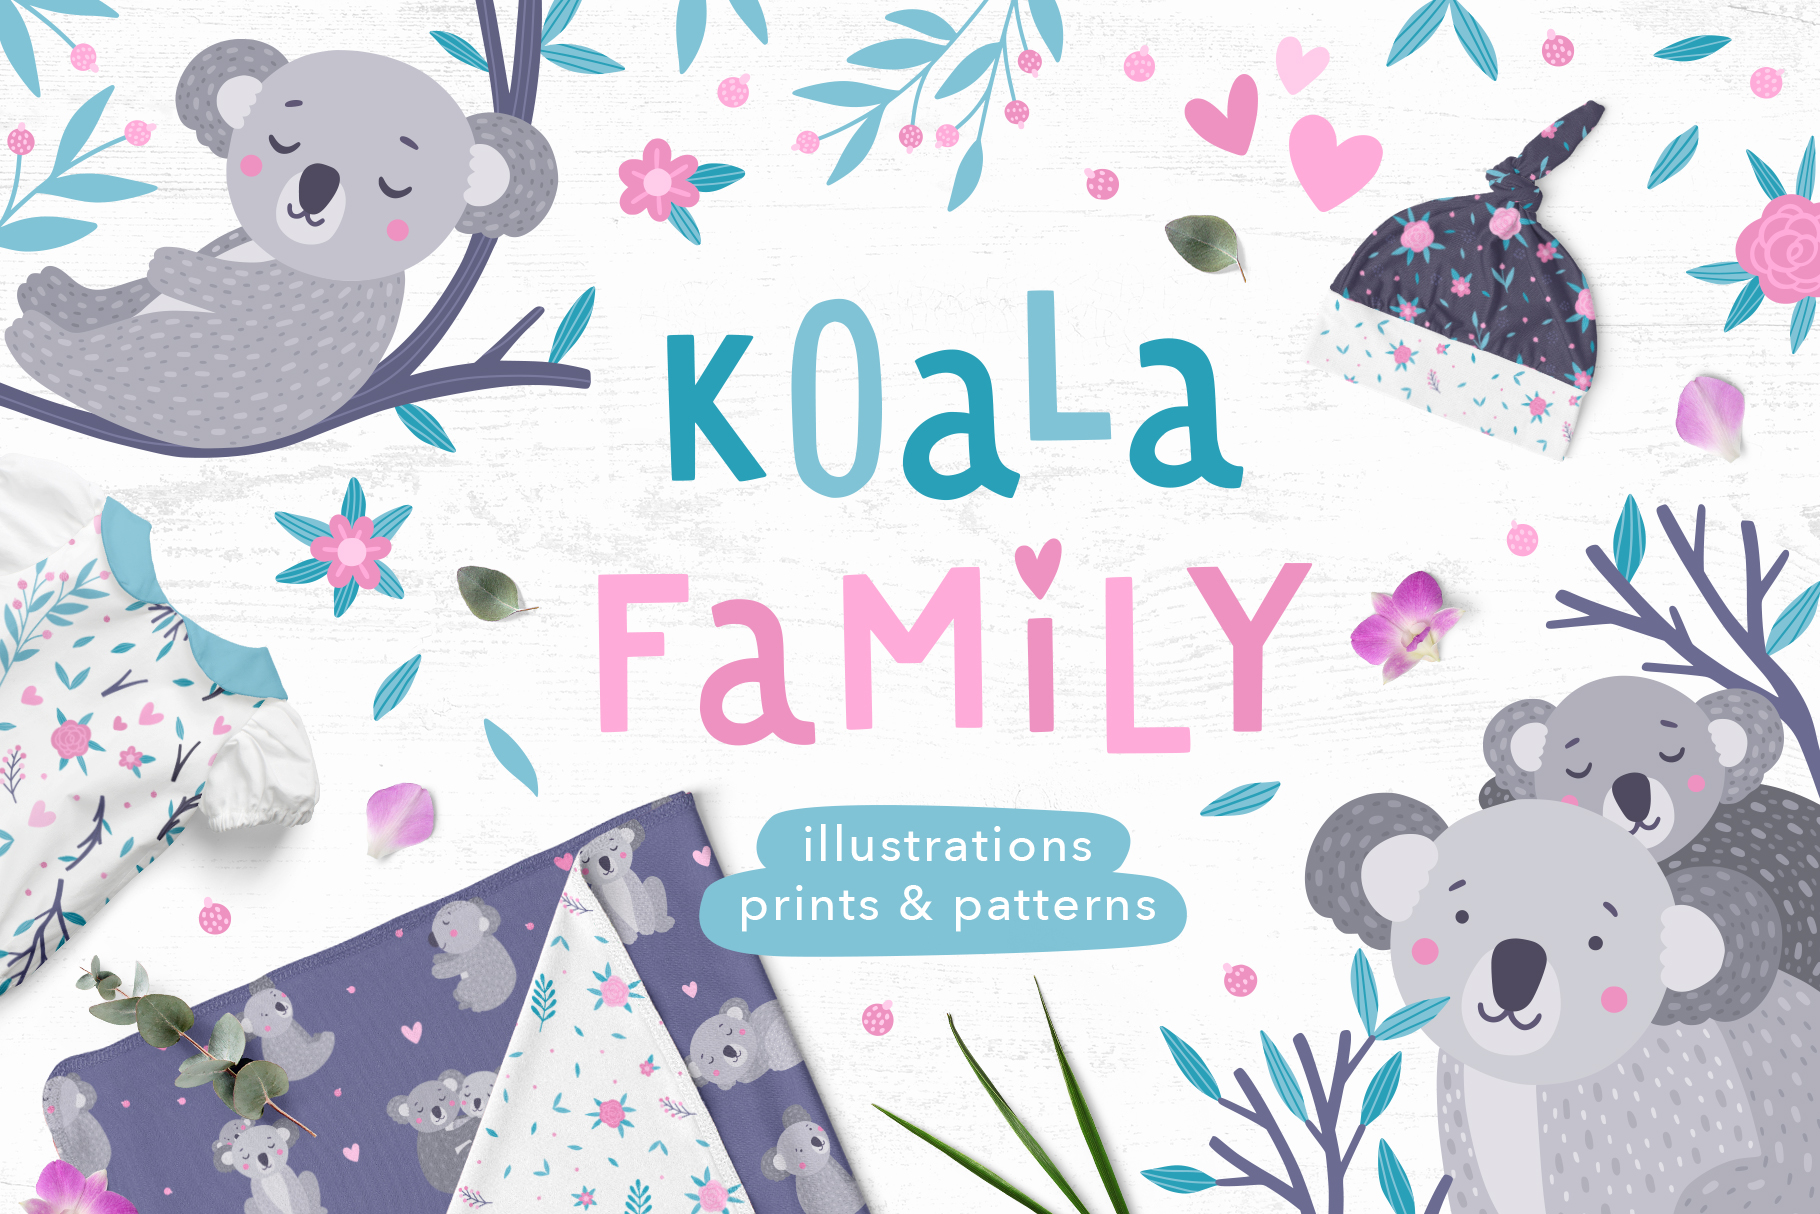 Download Free Koala Family Illustrations Graphic By Redchocolate Creative for Cricut Explore, Silhouette and other cutting machines.